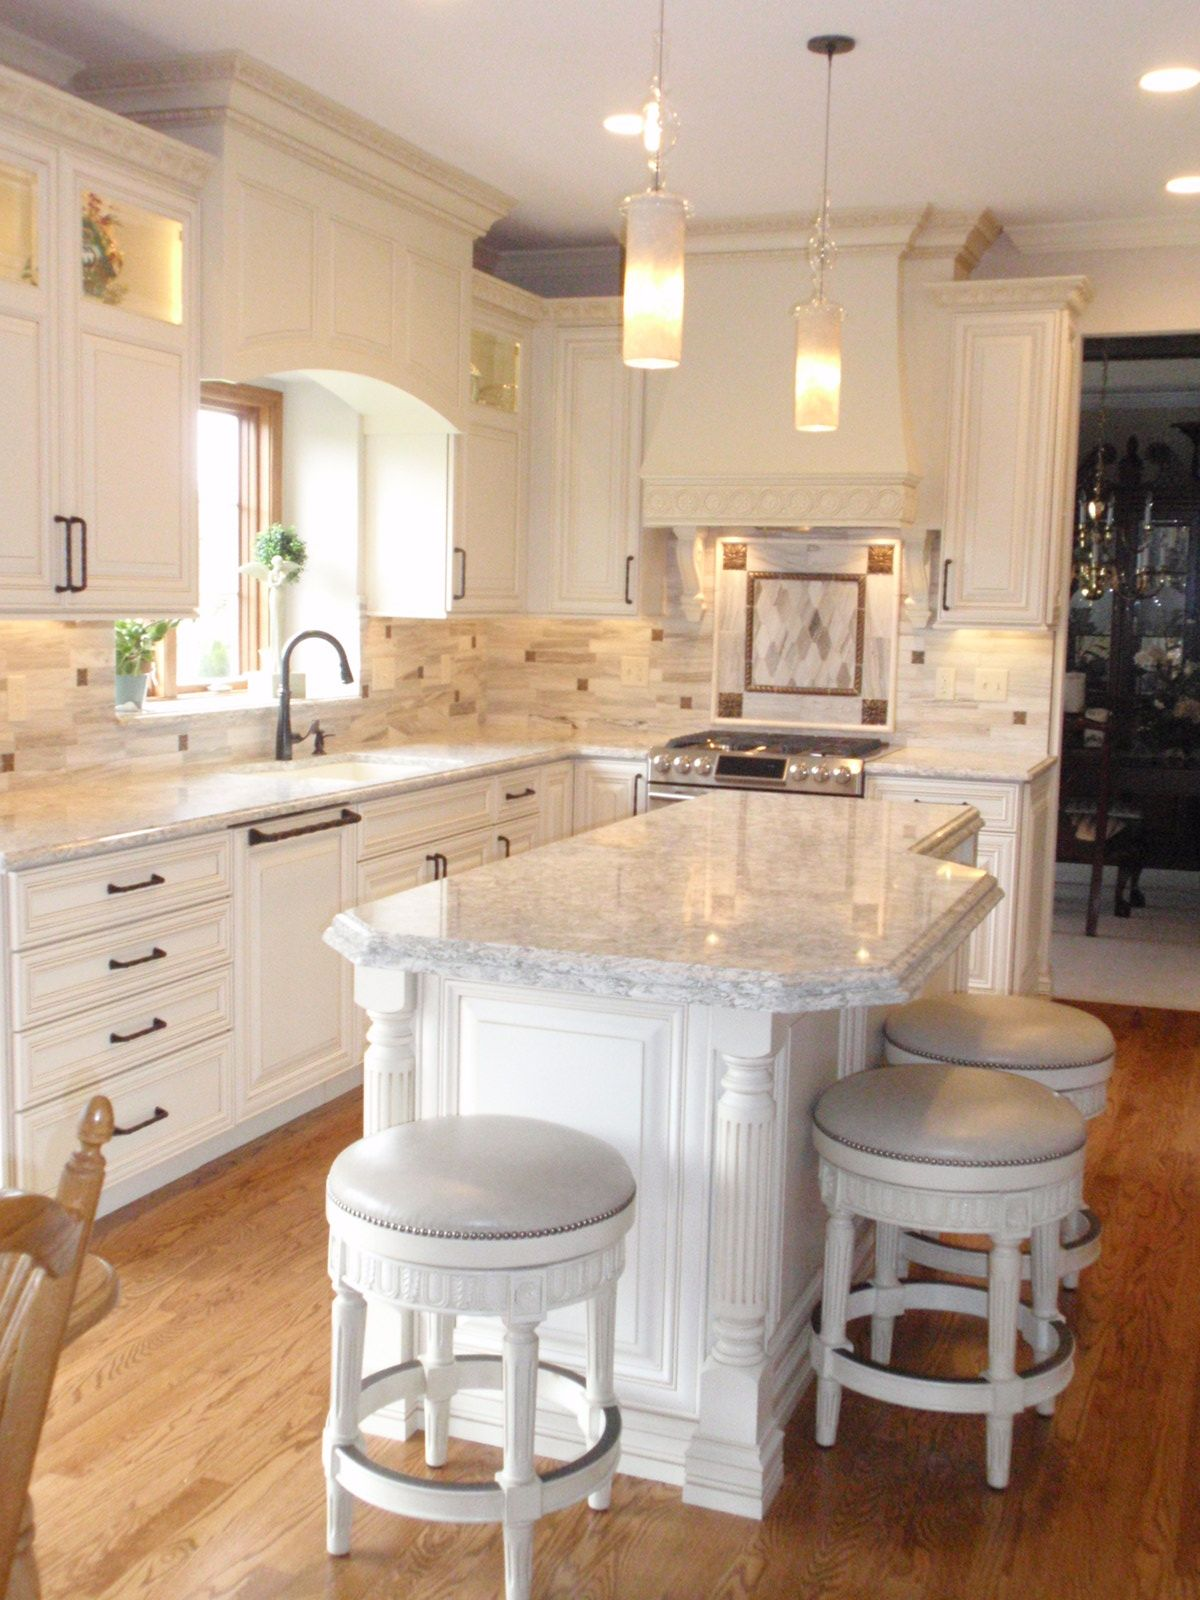 Best Toshe Design Kitchen Remodel Geneva Il With Images 640 x 480